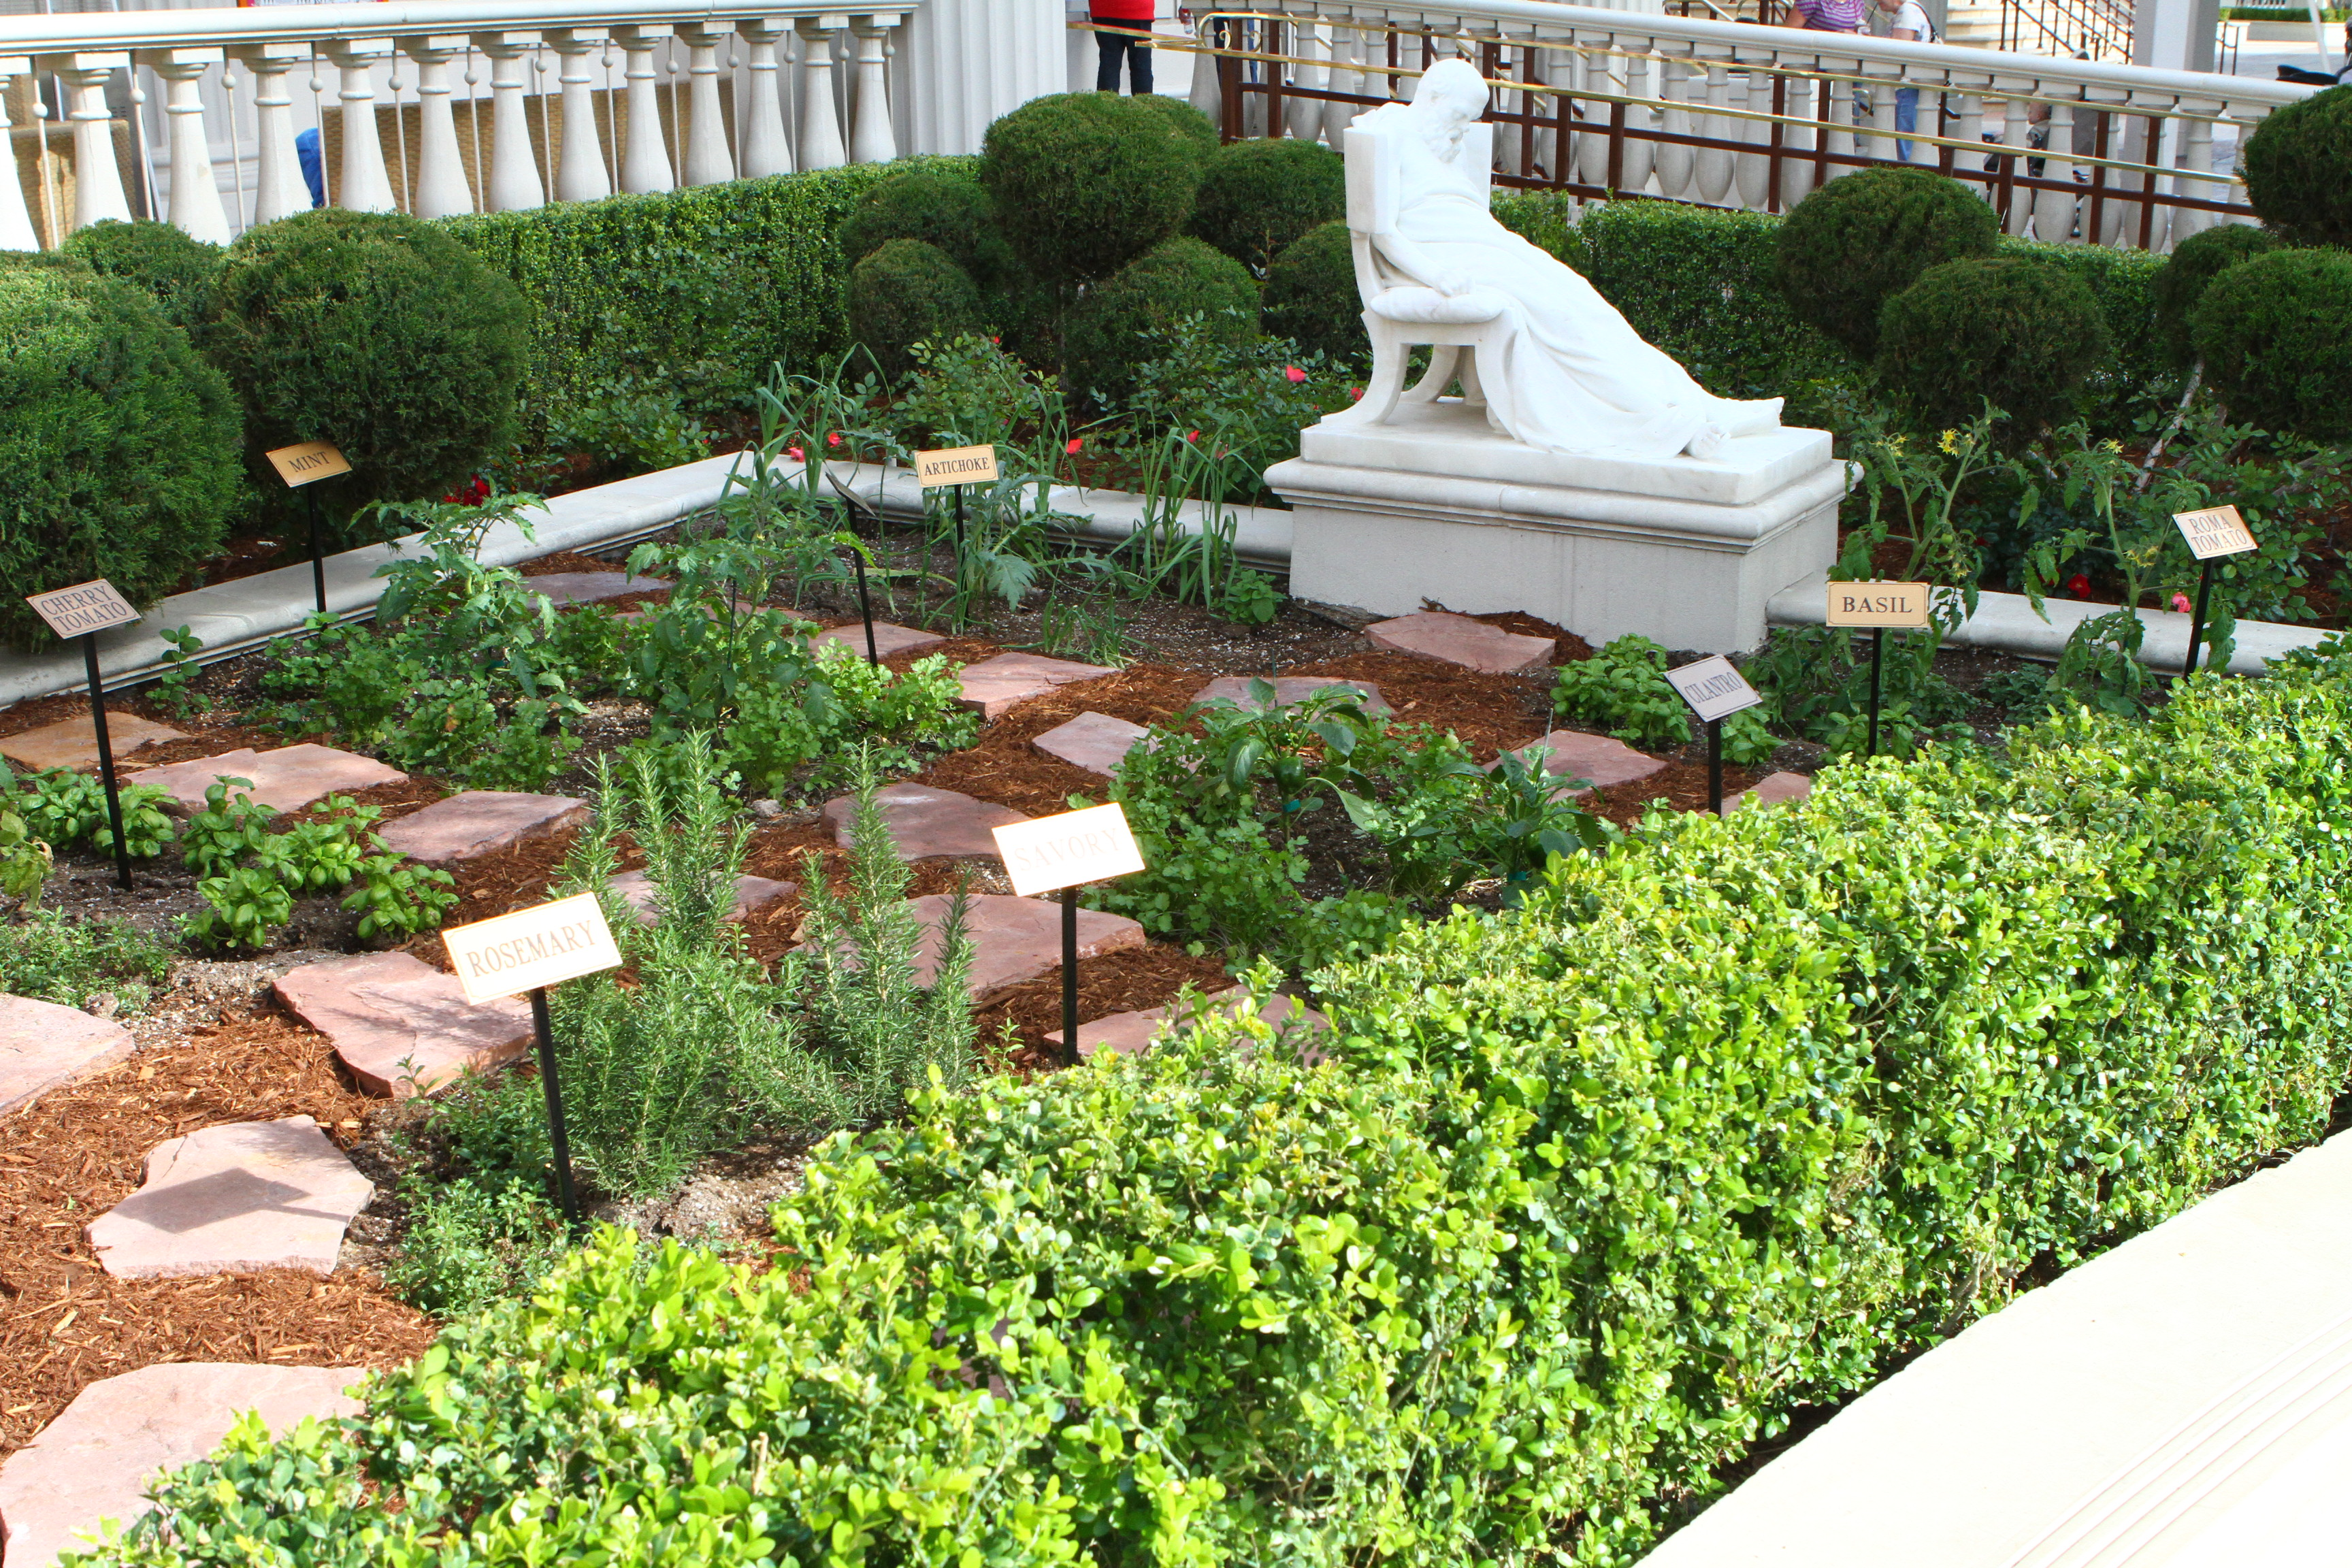 Editable Garden At Caesars Palace Las Vegas Is The First Of Its Kind On The  Las Vegas Strip